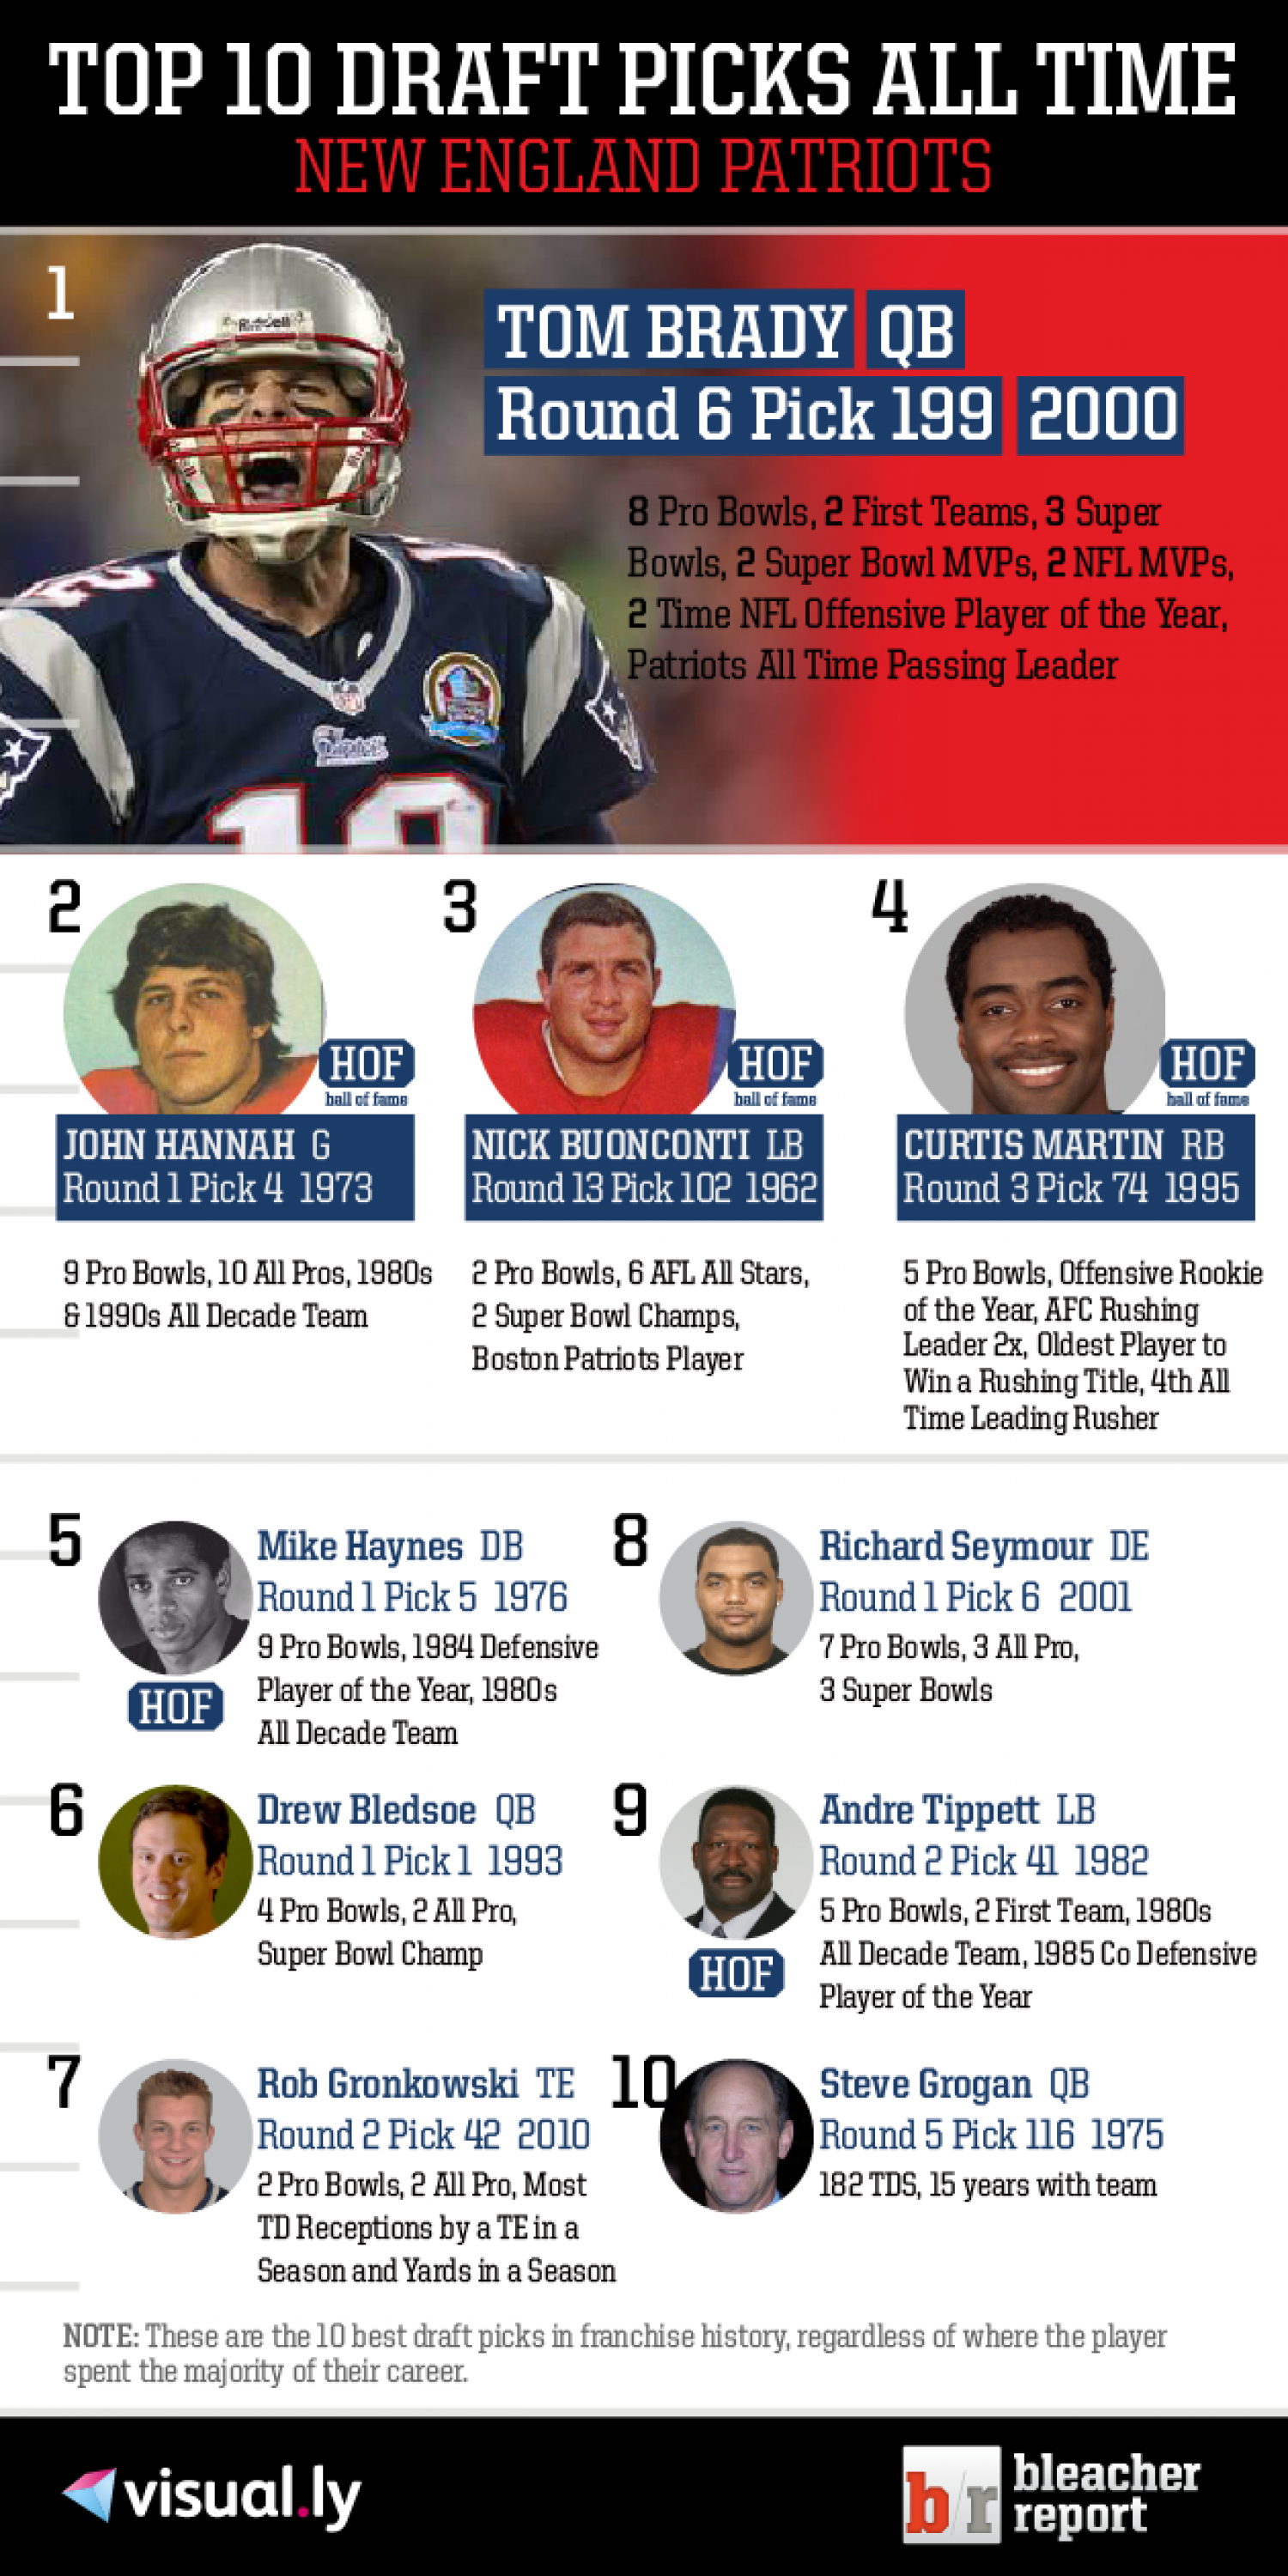 Top 10 Draft Picks of All Time: New England Patriots Infographic